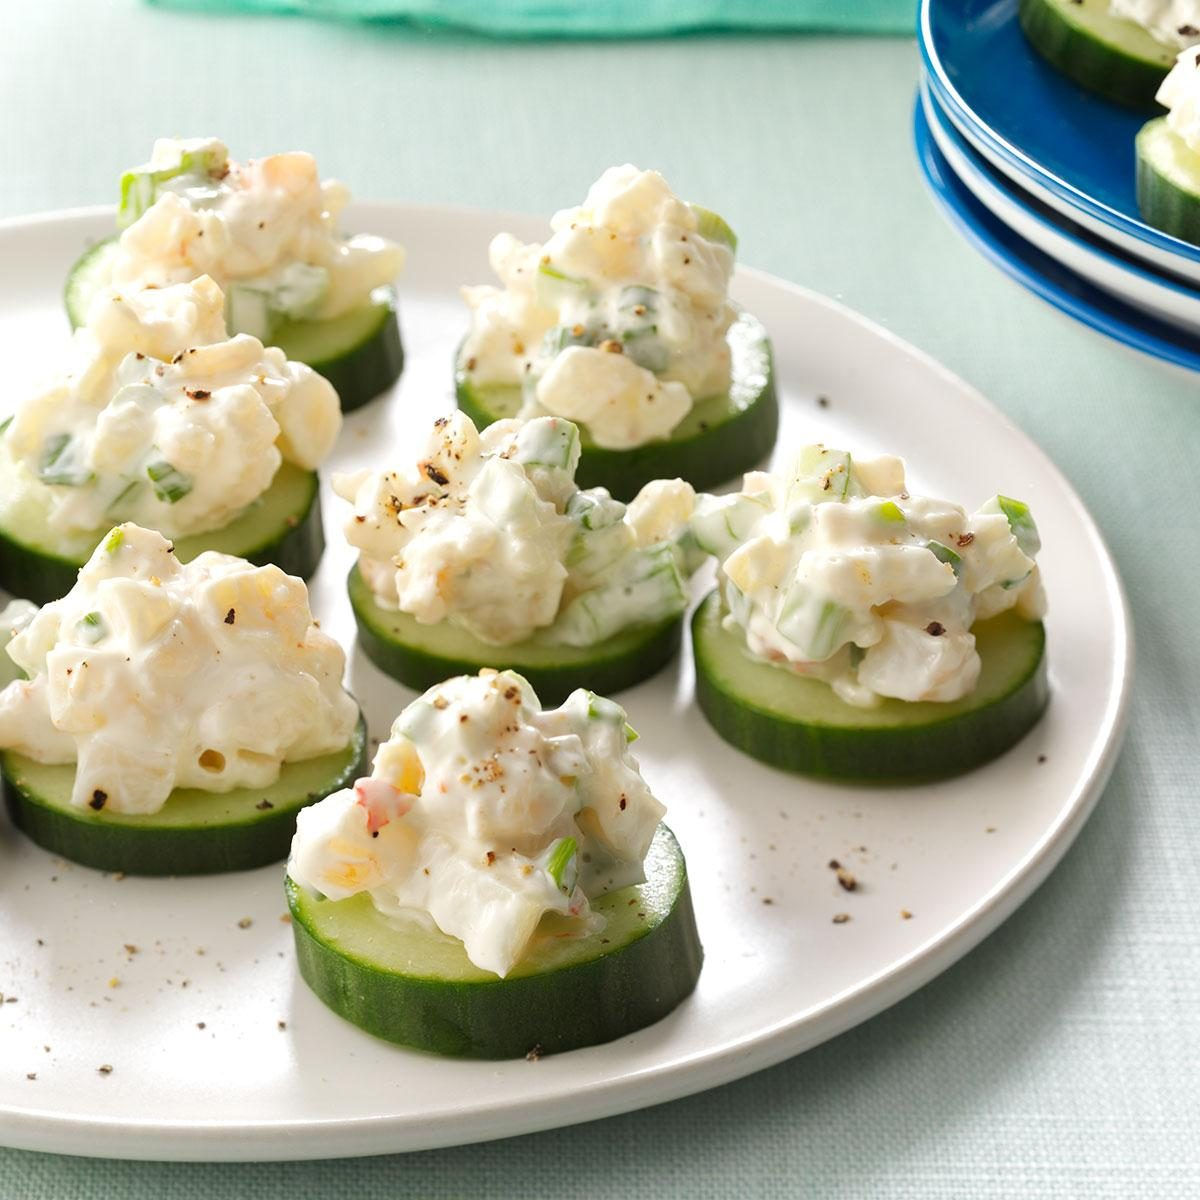 Irish appetizers taste of home taste of home irish appetizers recipes forumfinder Images